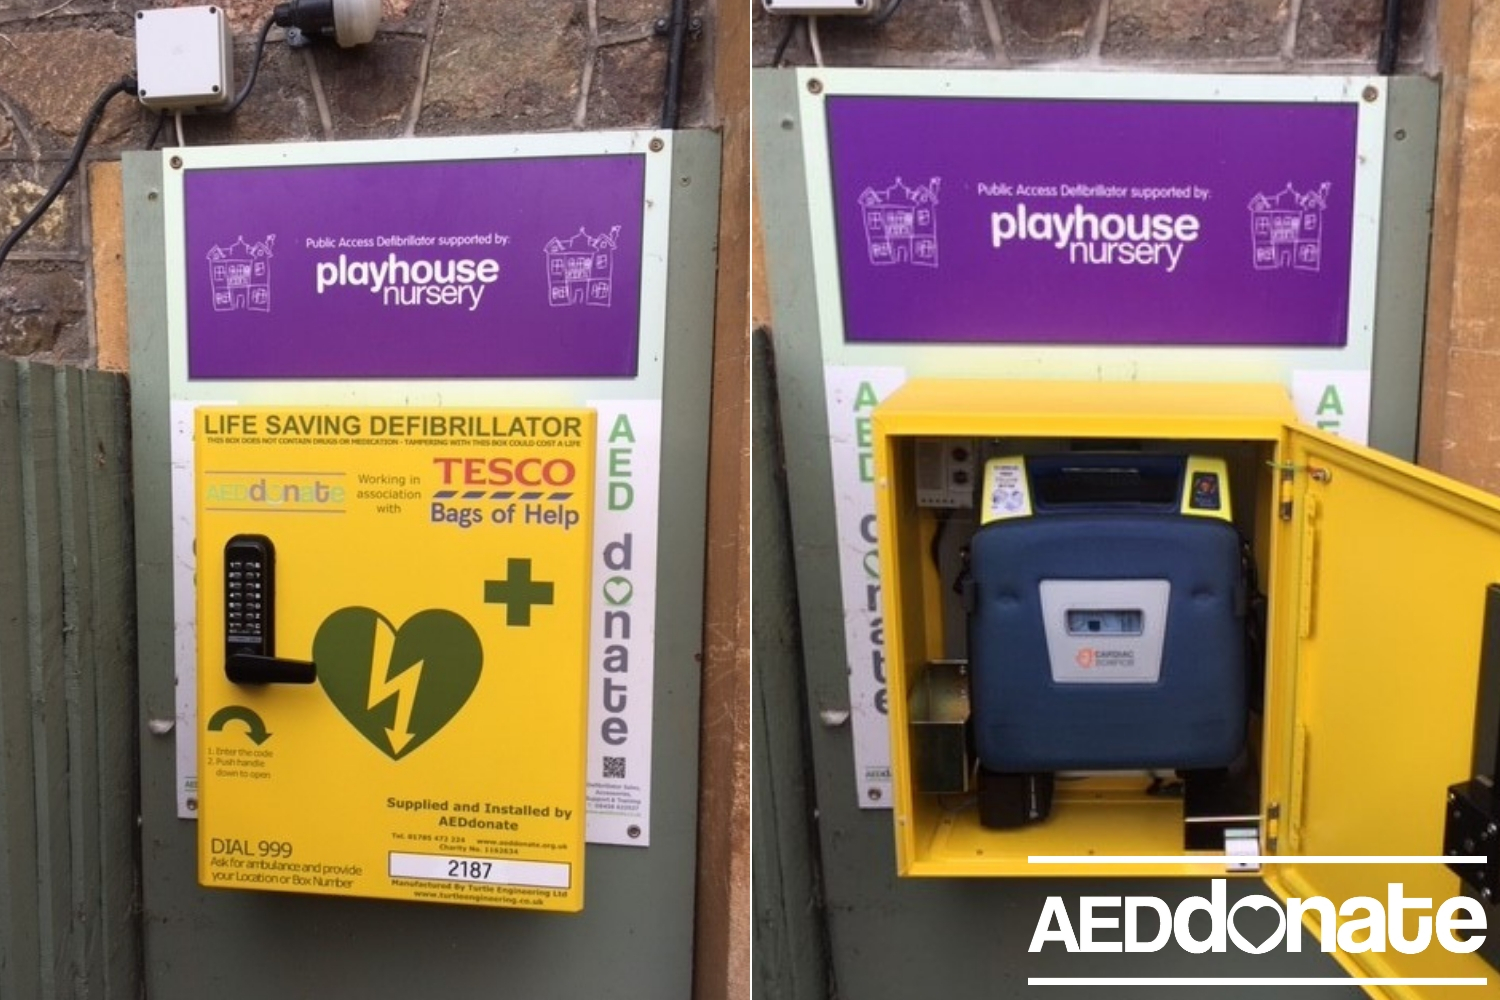 AED cabinet upgrade for Playhouse Nursery